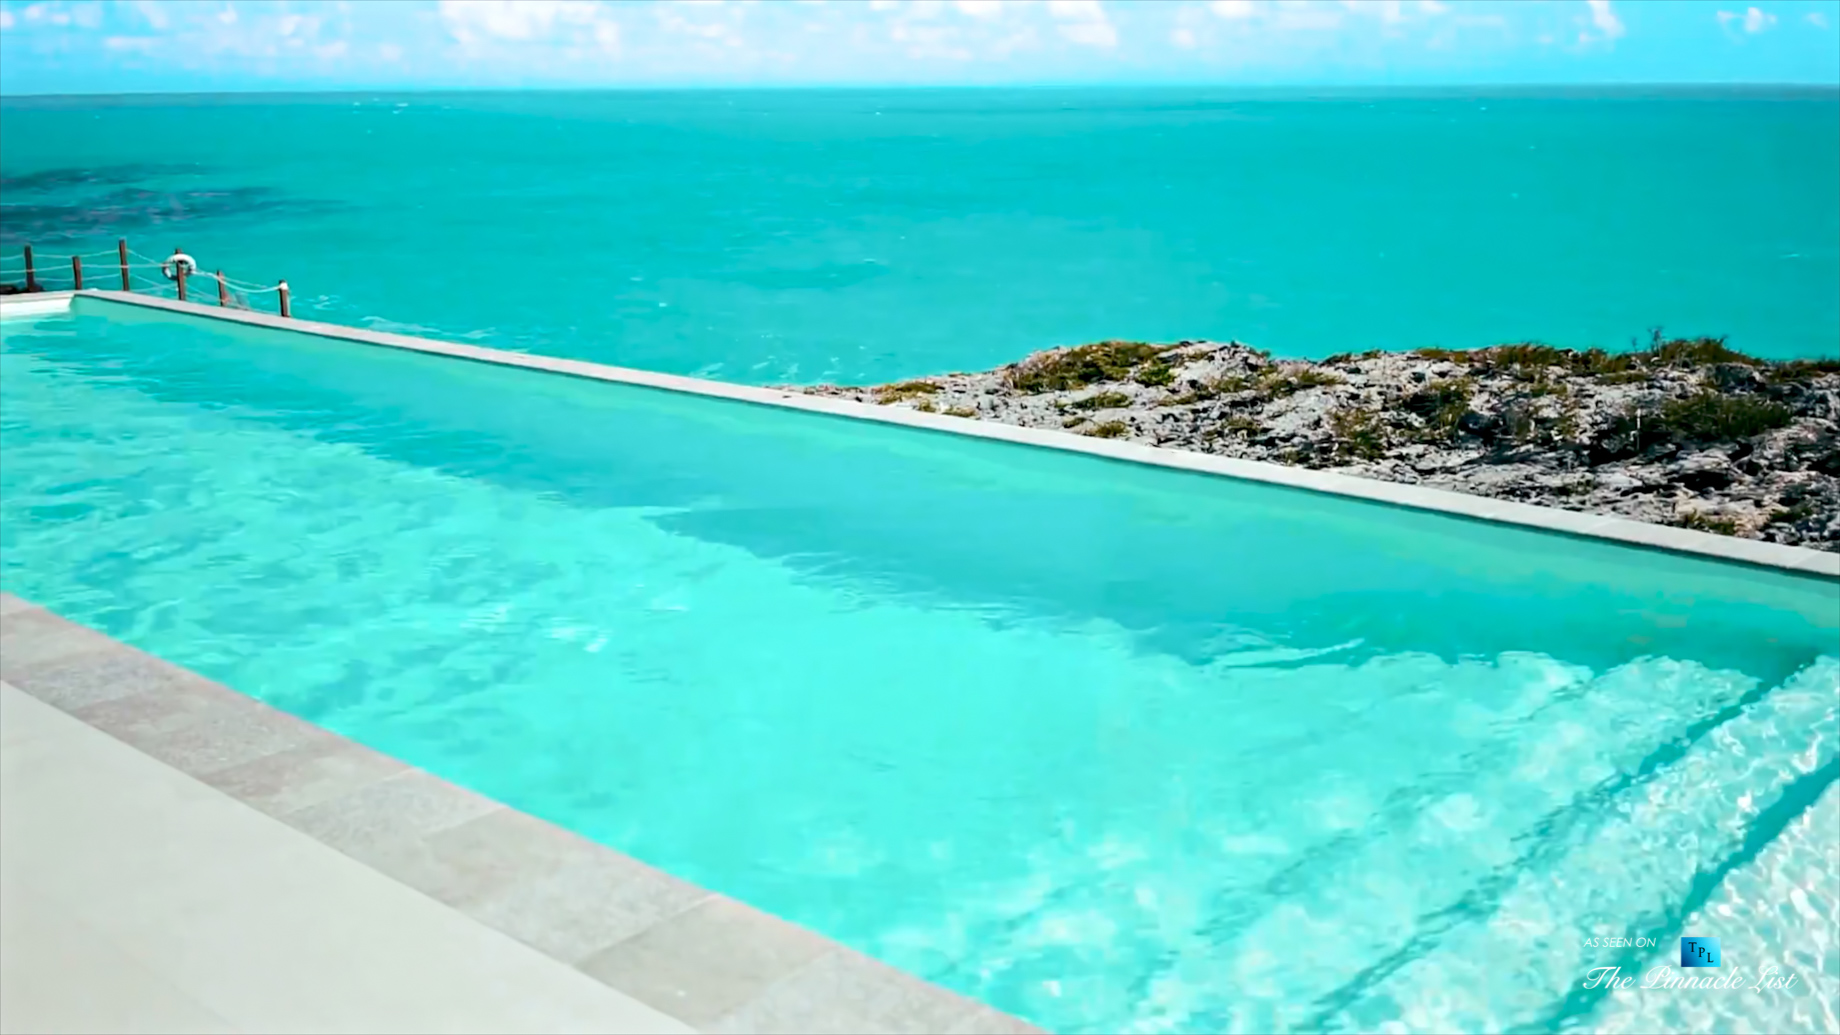 Tip of the Tail Villa - Providenciales, Turks and Caicos Islands - Caribbean Villa Oceanfront Infinity Pool - Luxury Real Estate - South Shore Peninsula Home